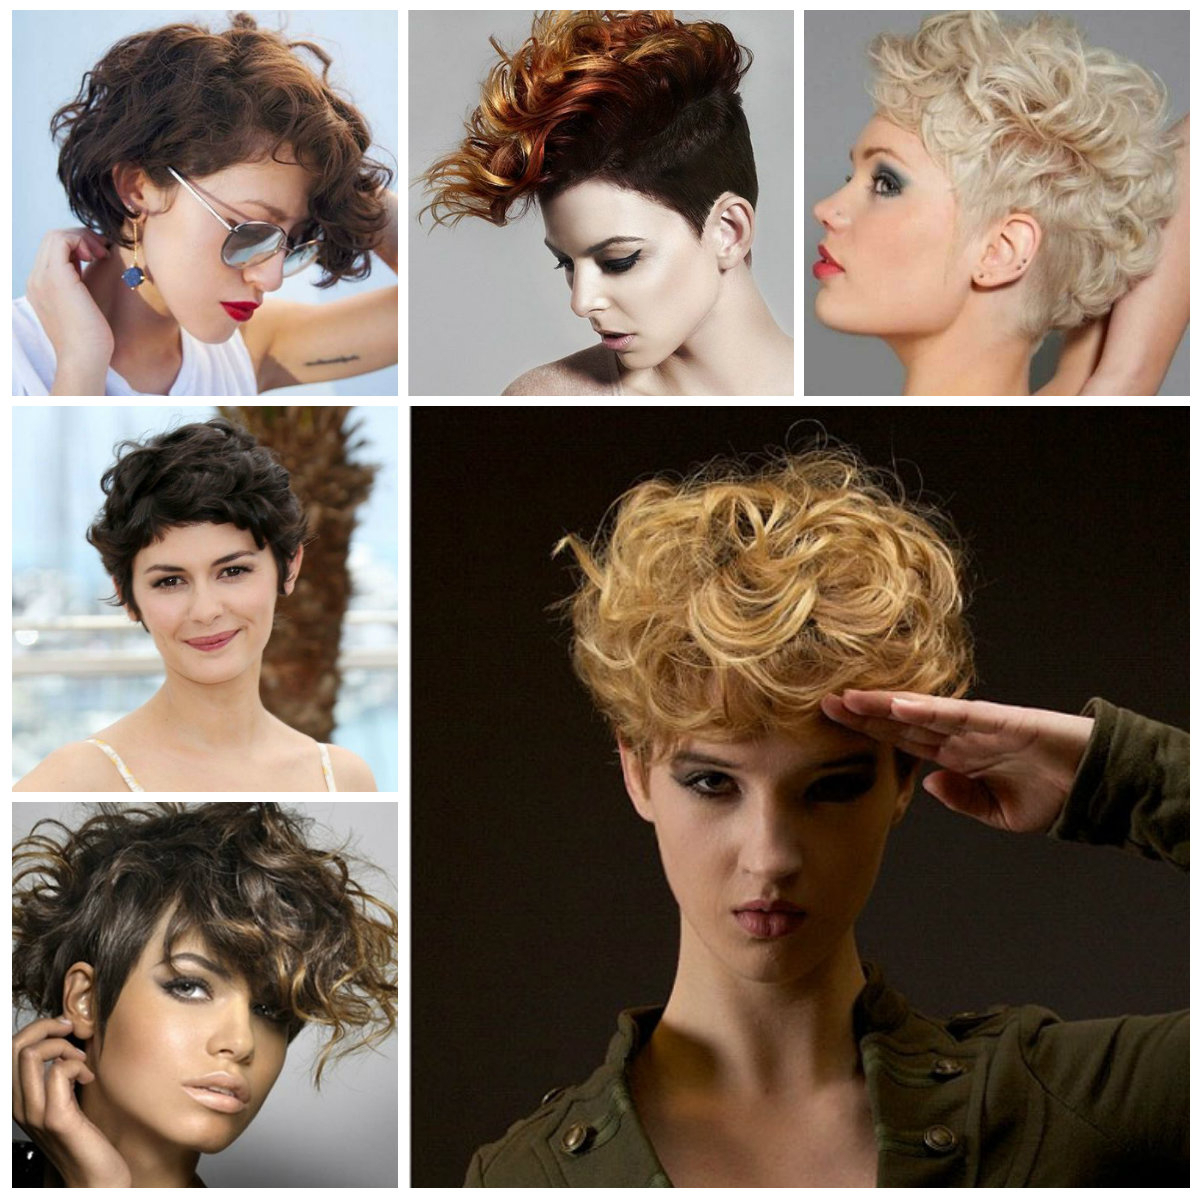 Short Hairstyles For Curly Hair 2017 – Hairstyles Ideas In Curly Golden Brown Pixie Hairstyles (View 15 of 20)